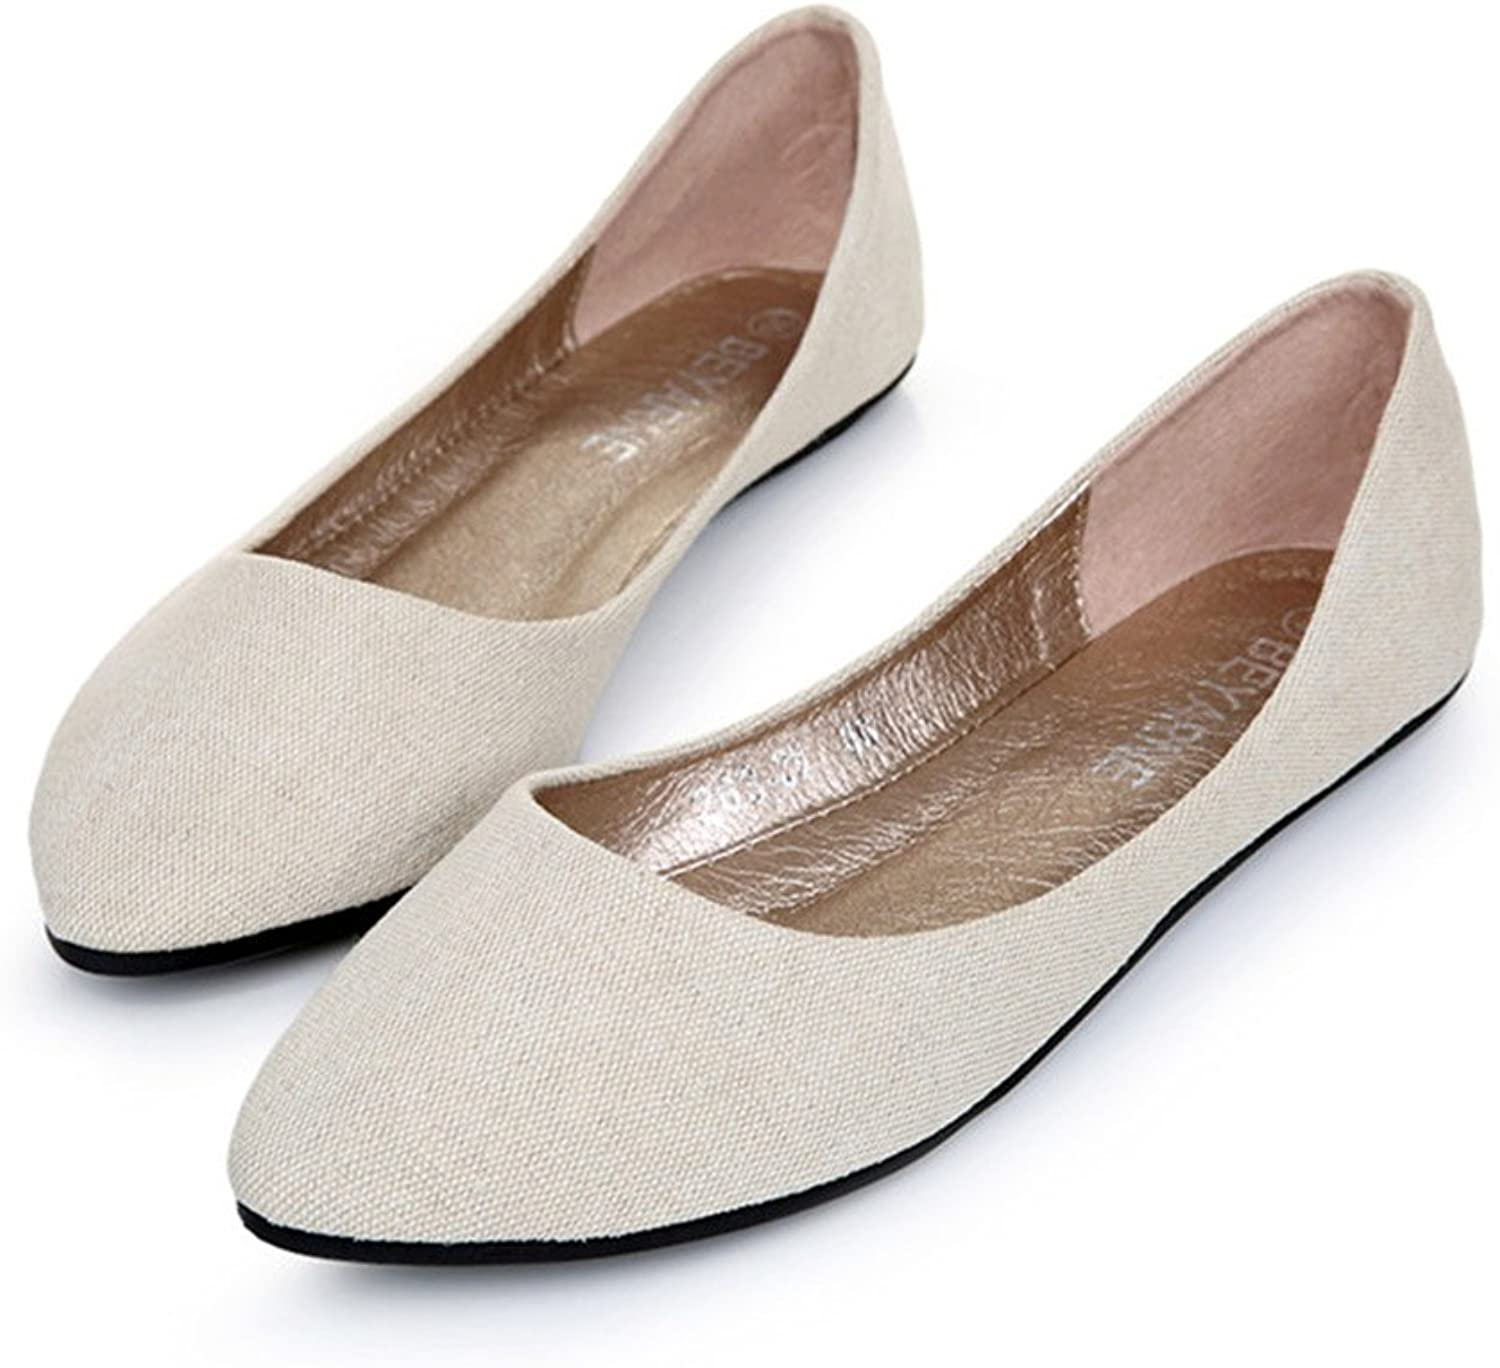 BININBOX Women's Denim Pointed Toe Flats shoes 2 color